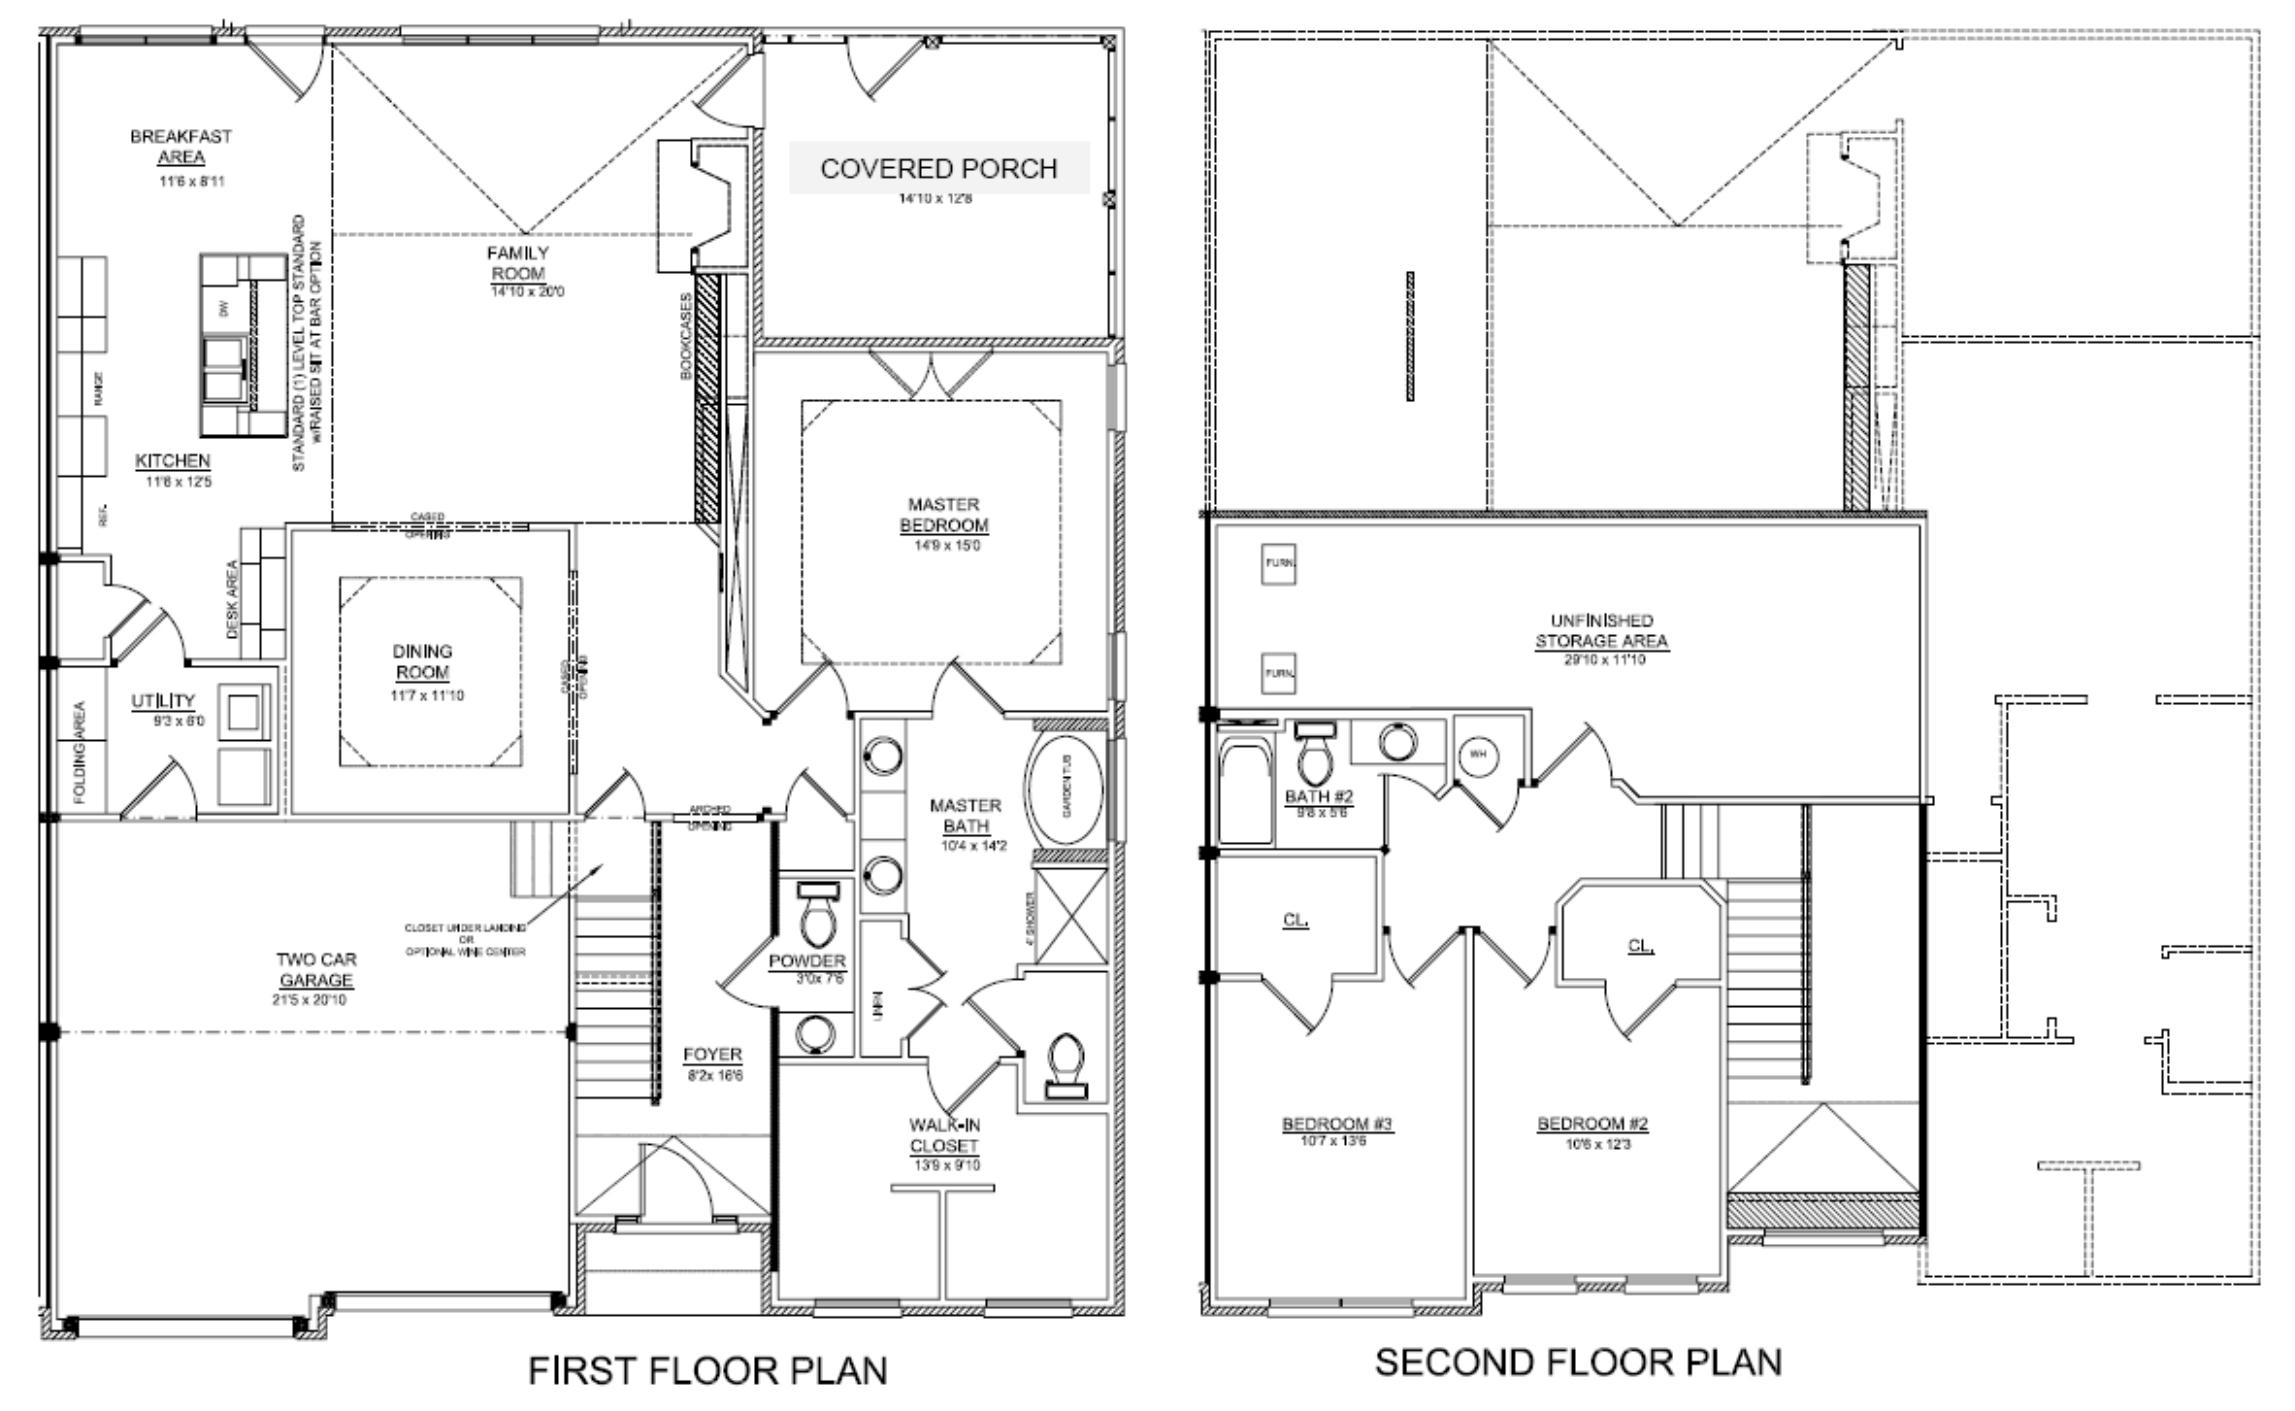 25 delightful luxury townhome floor plans building plans for Luxury townhome plans